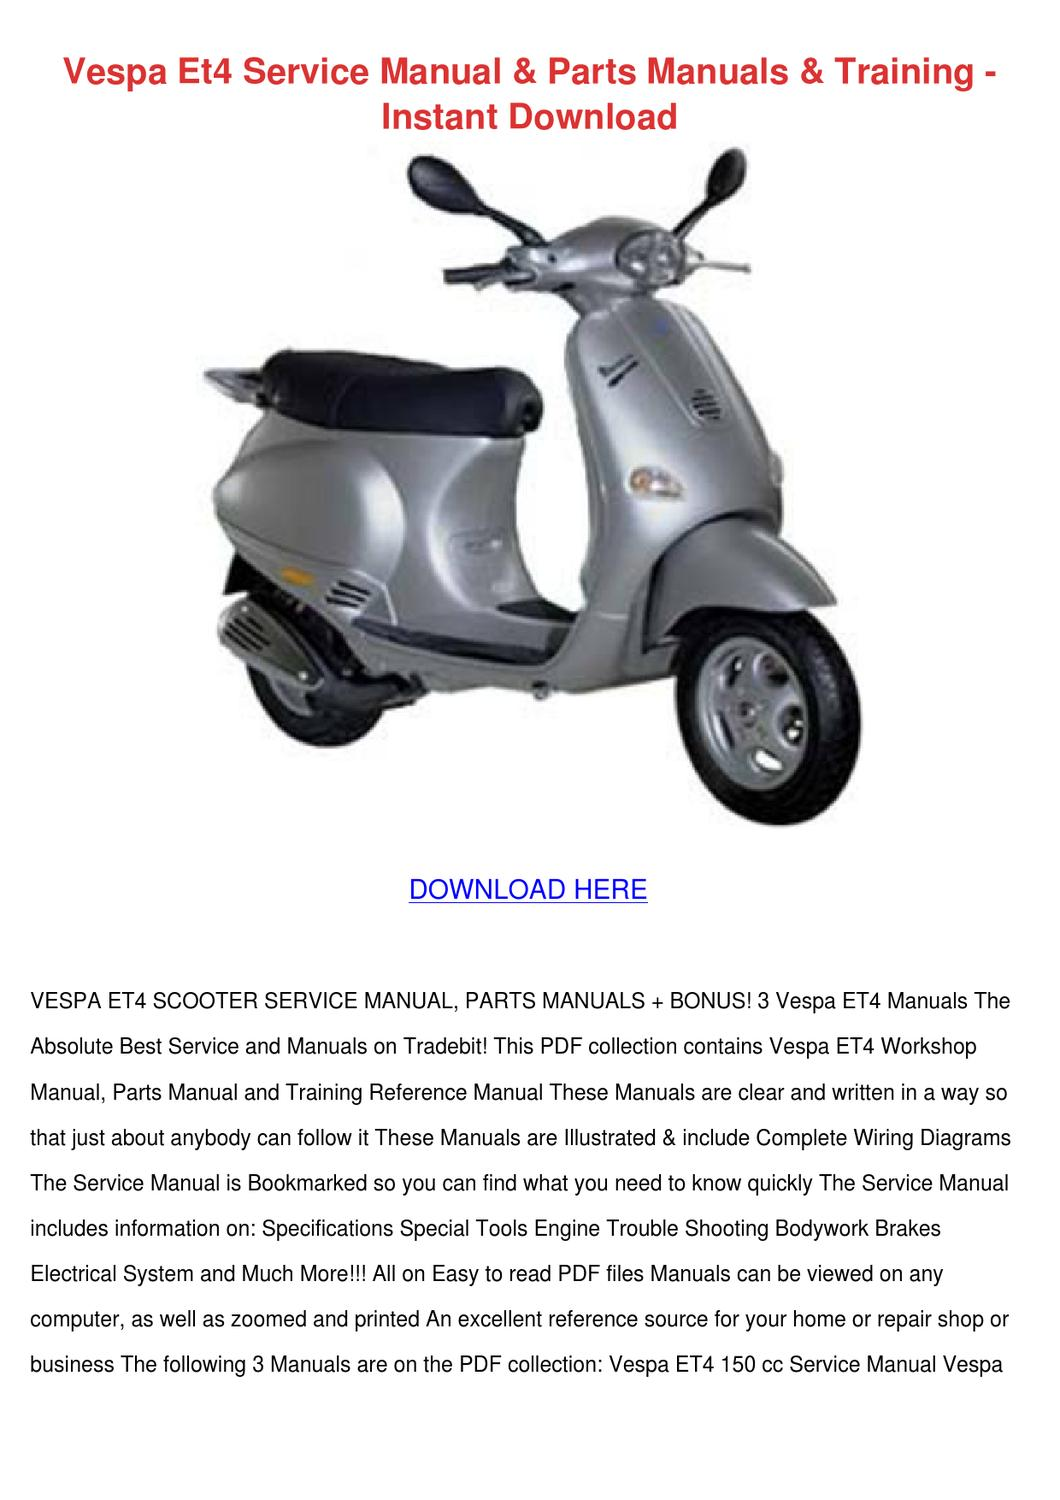 Vespa Et4 Wiring Diagram Pdf : Vespa et service manual parts manuals traini by sheryll